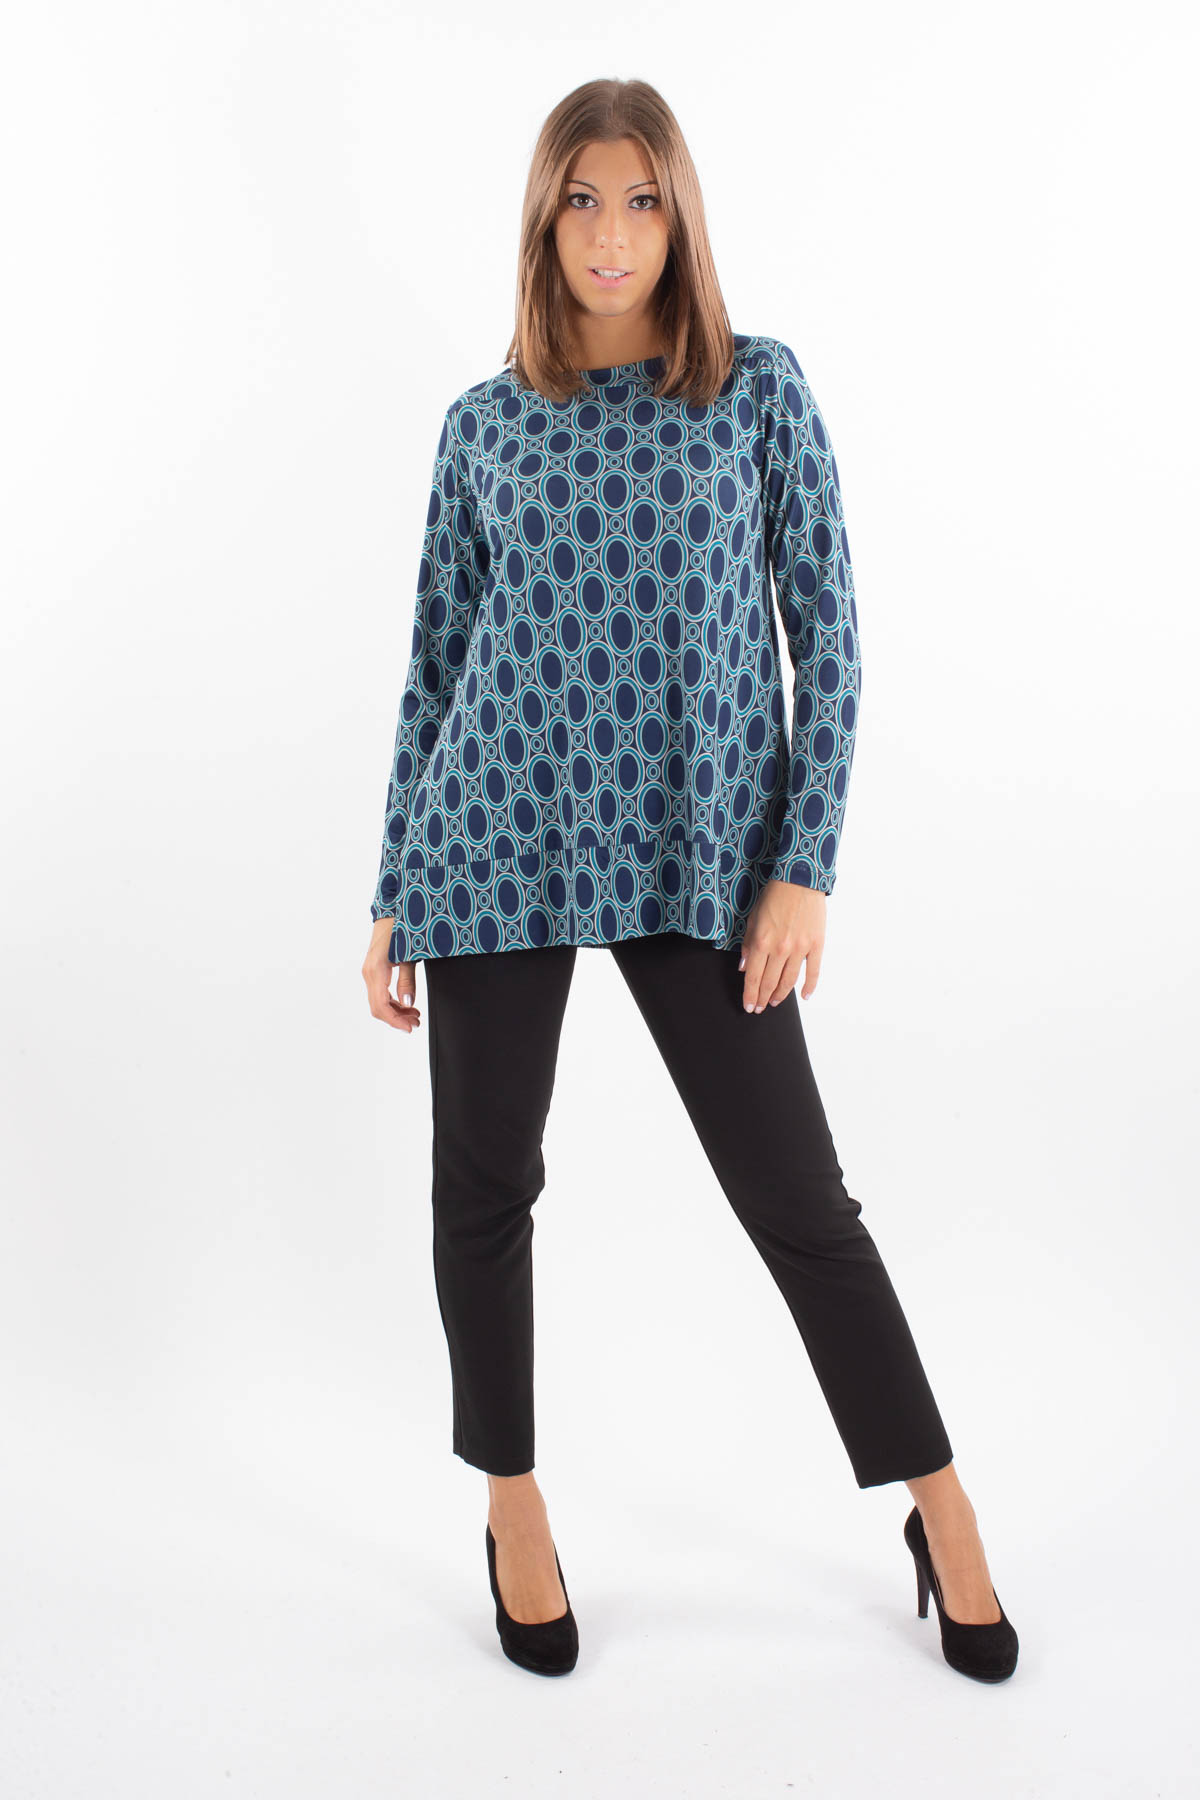 OPTICAL POLYVISCOSE SWEATER FLARED ON THE BOTTOM  for woman - BLUE - Paquito Pronto Moda Shop Online